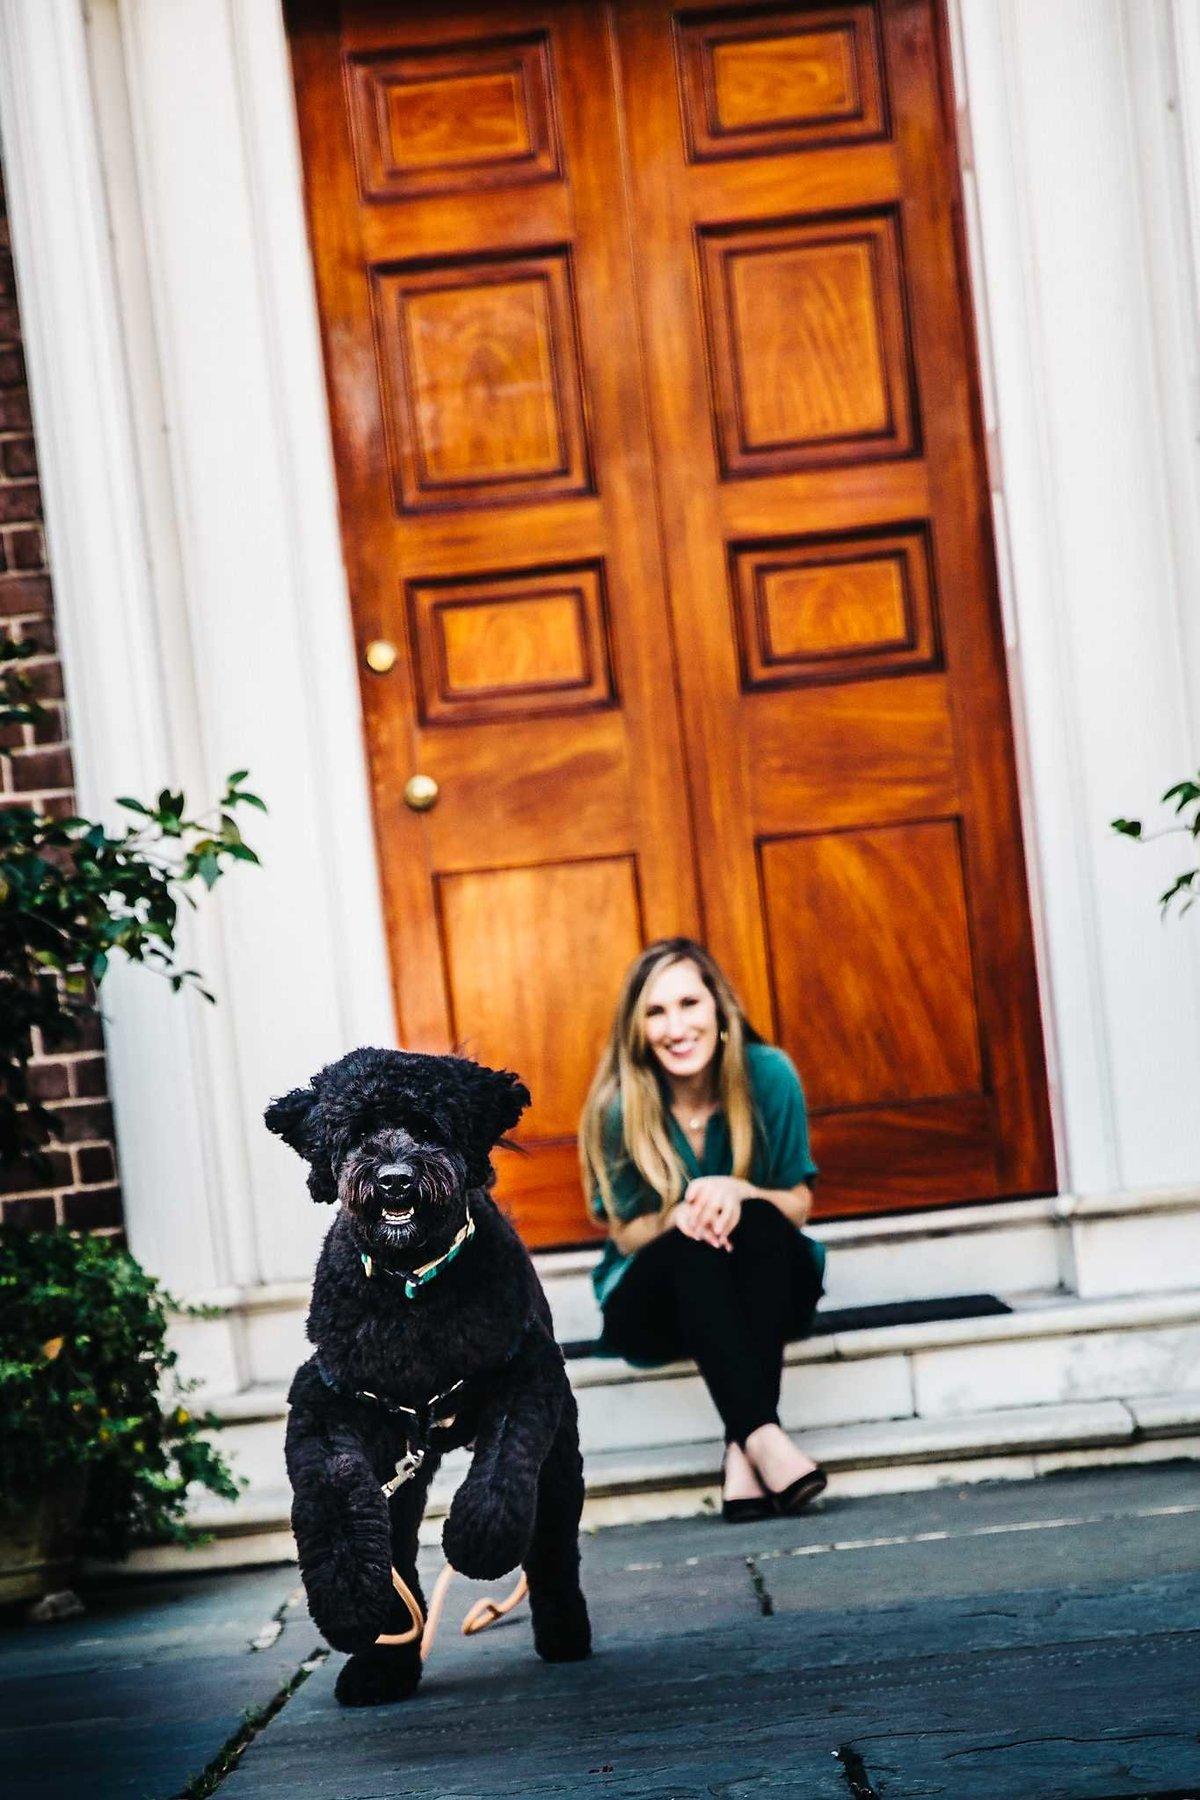 Happy-Dog-Pet-photographers-in-Charleston-SC-Fia-Forever-Photography-C64A7010